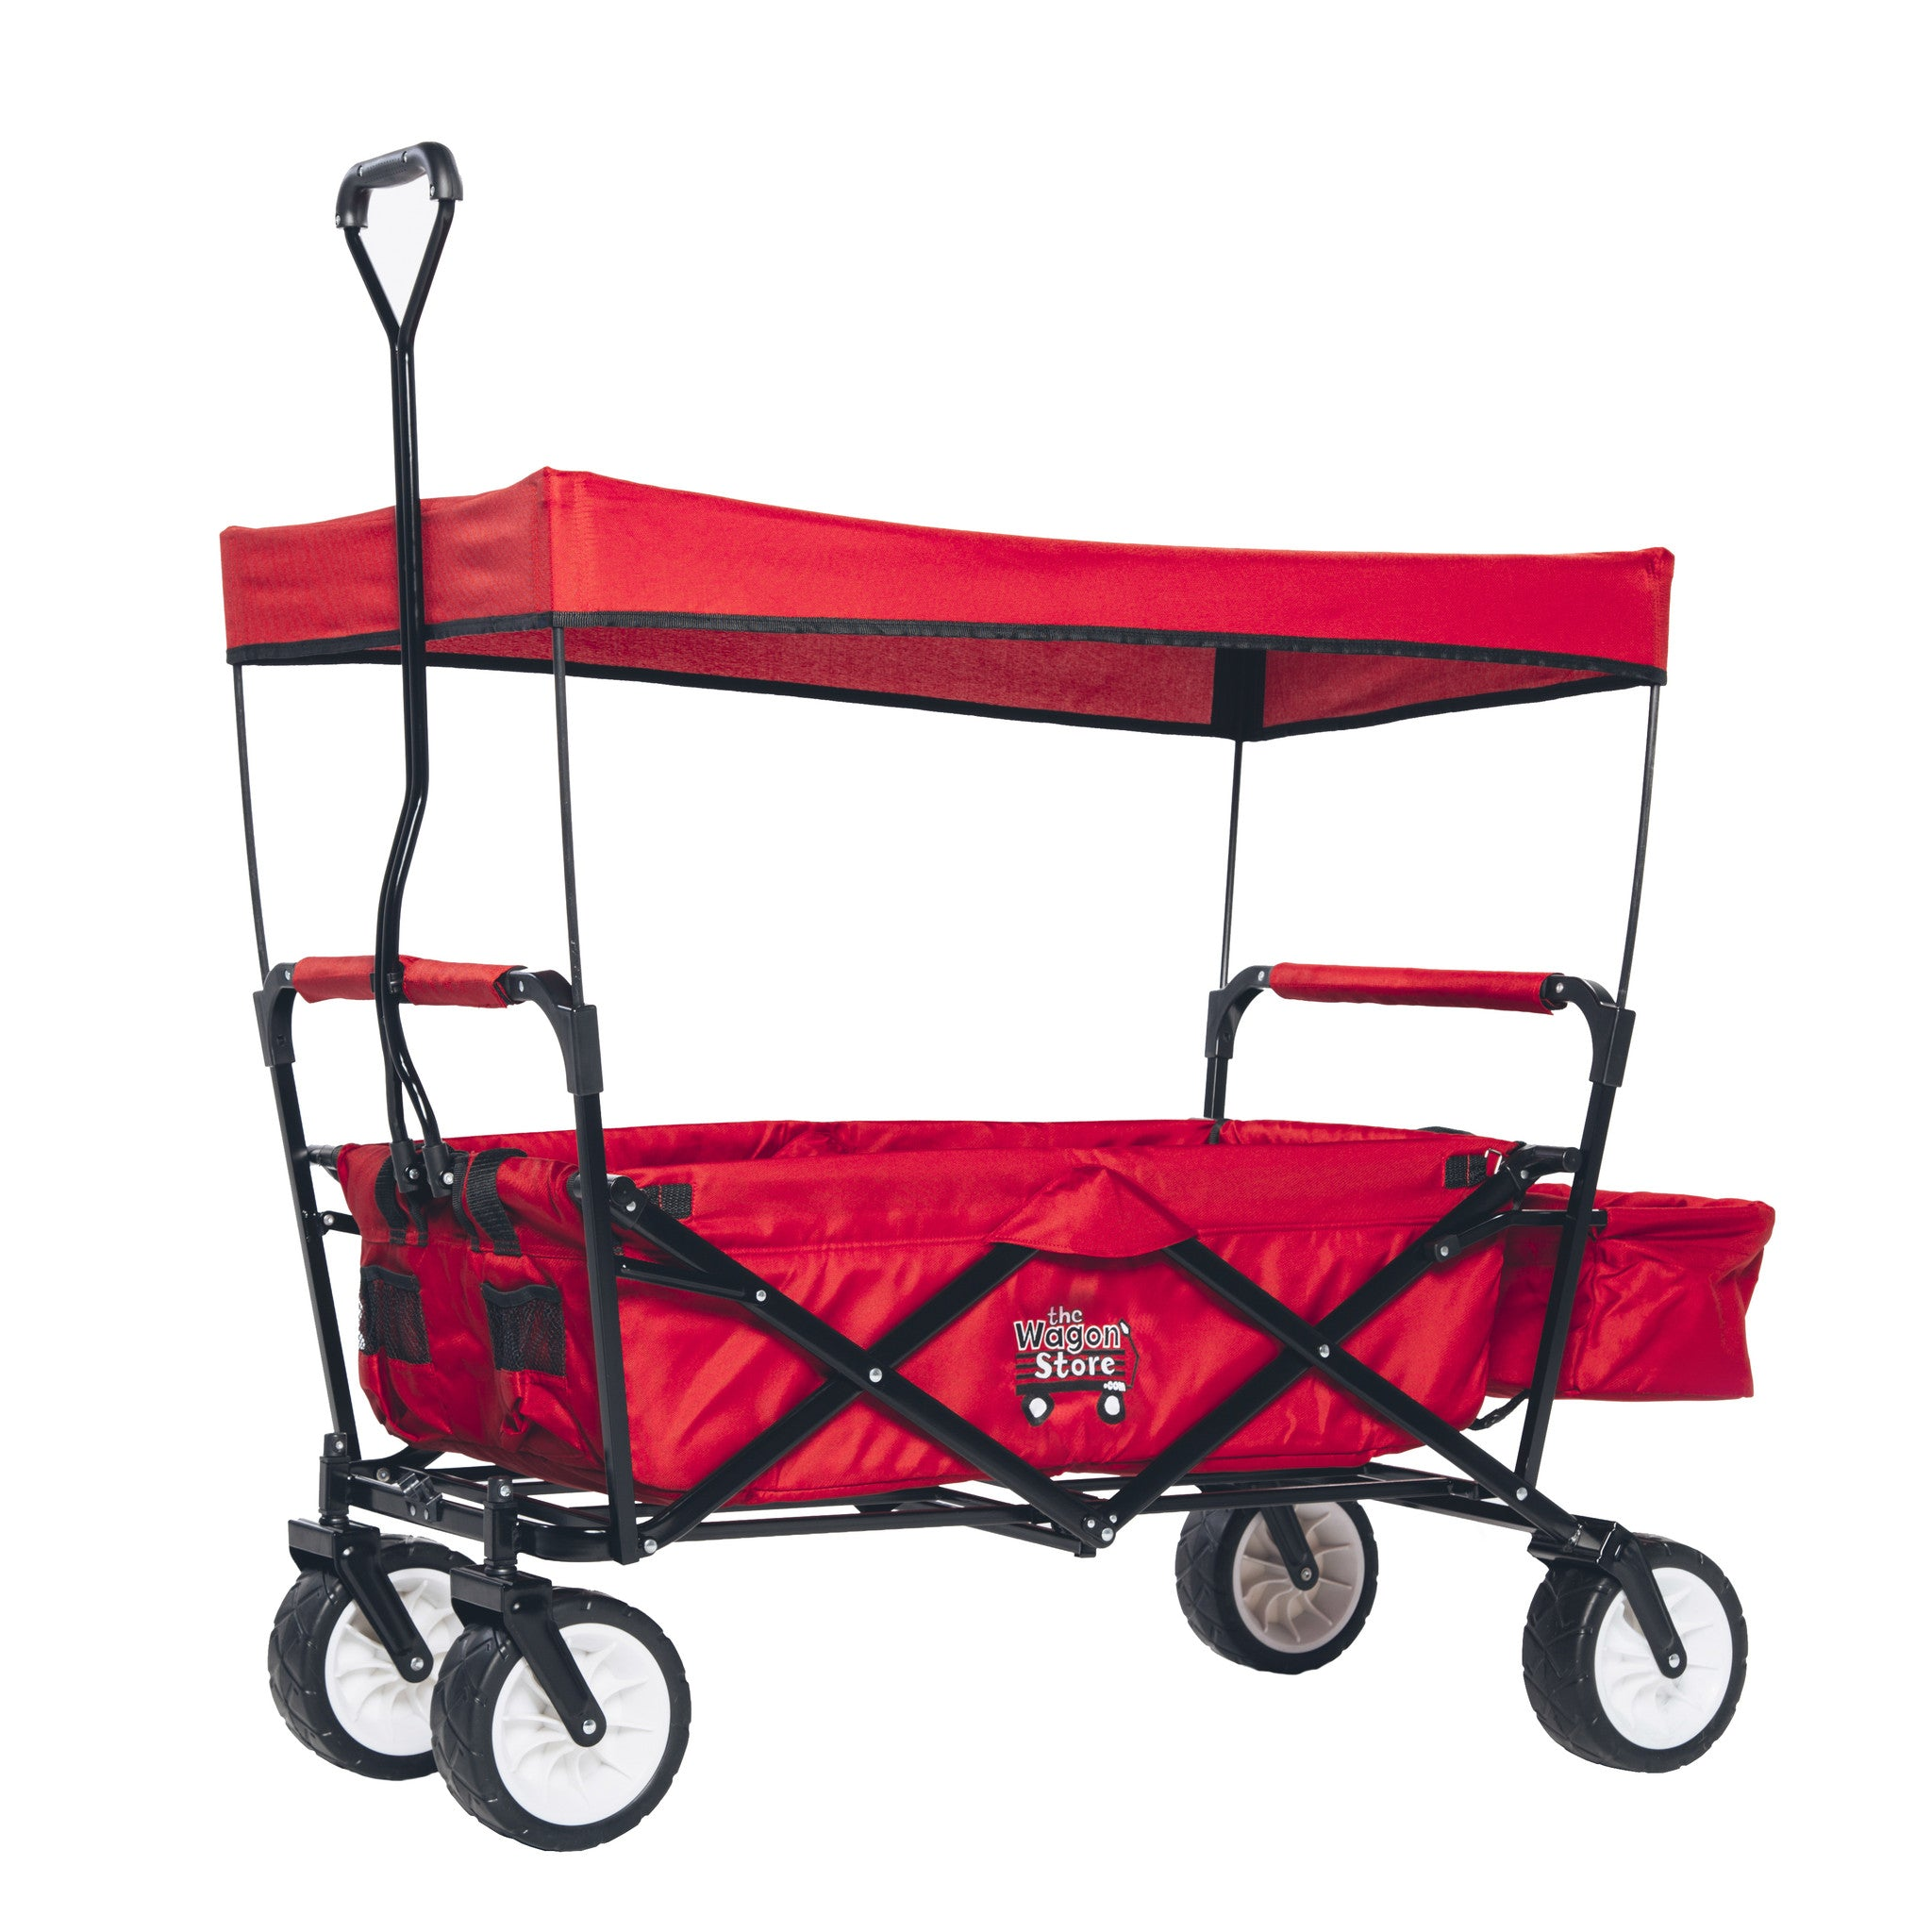 foldable sport wagon the wagon store. Black Bedroom Furniture Sets. Home Design Ideas